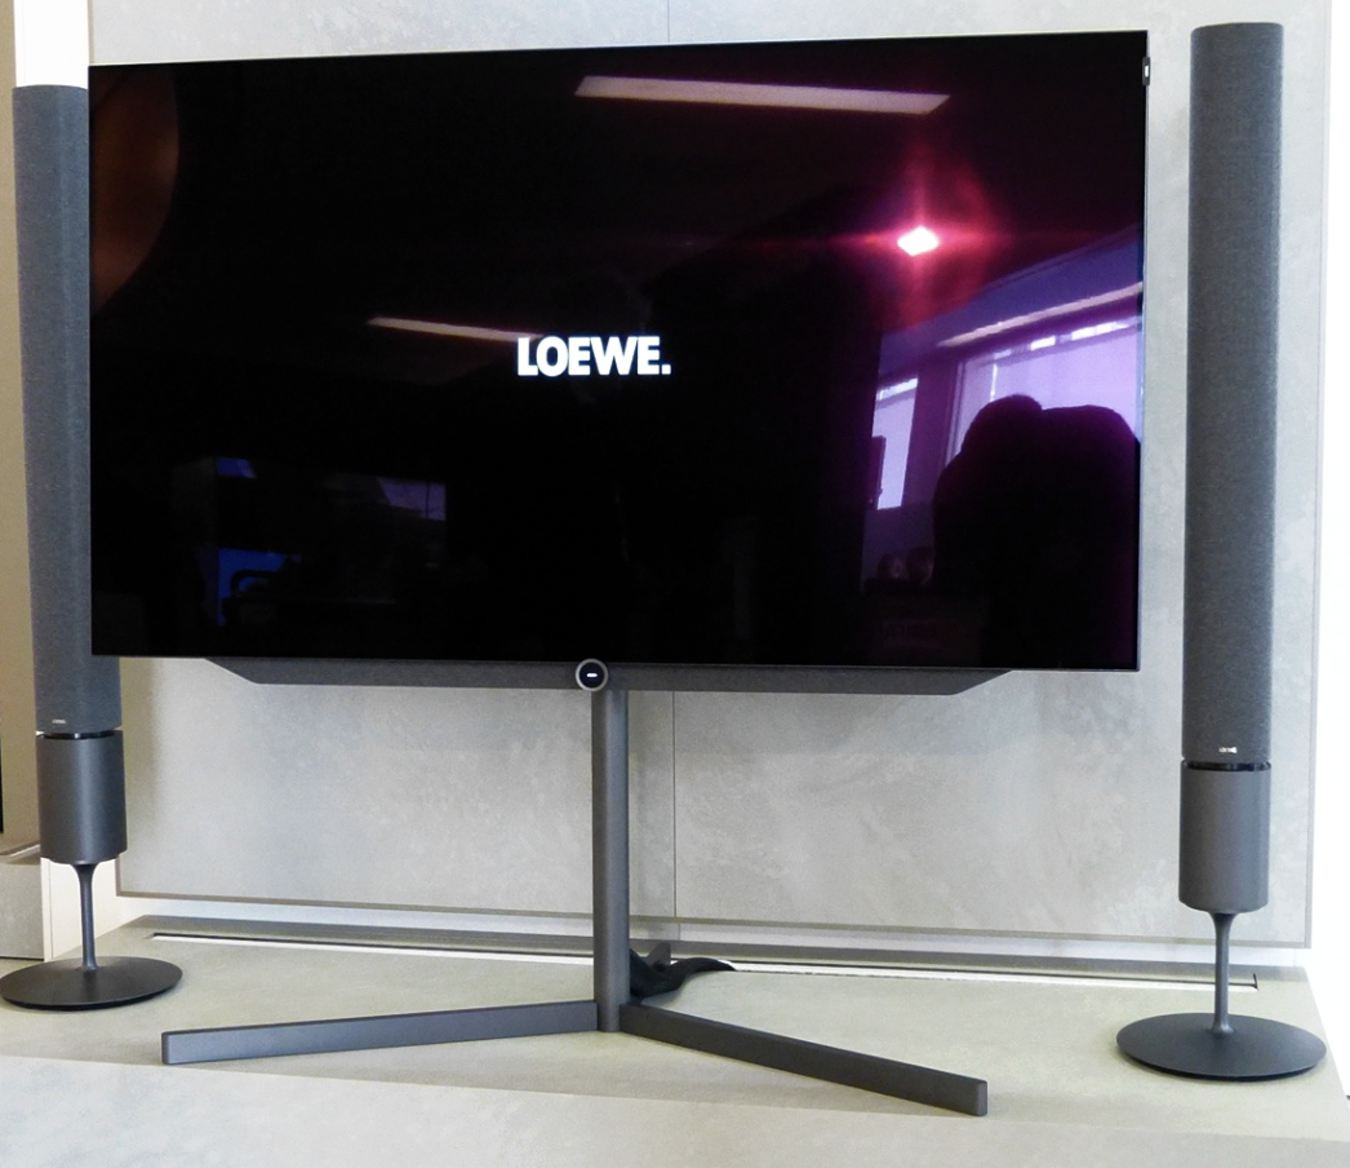 loewe bild bild 7 oled loewe fernseher. Black Bedroom Furniture Sets. Home Design Ideas